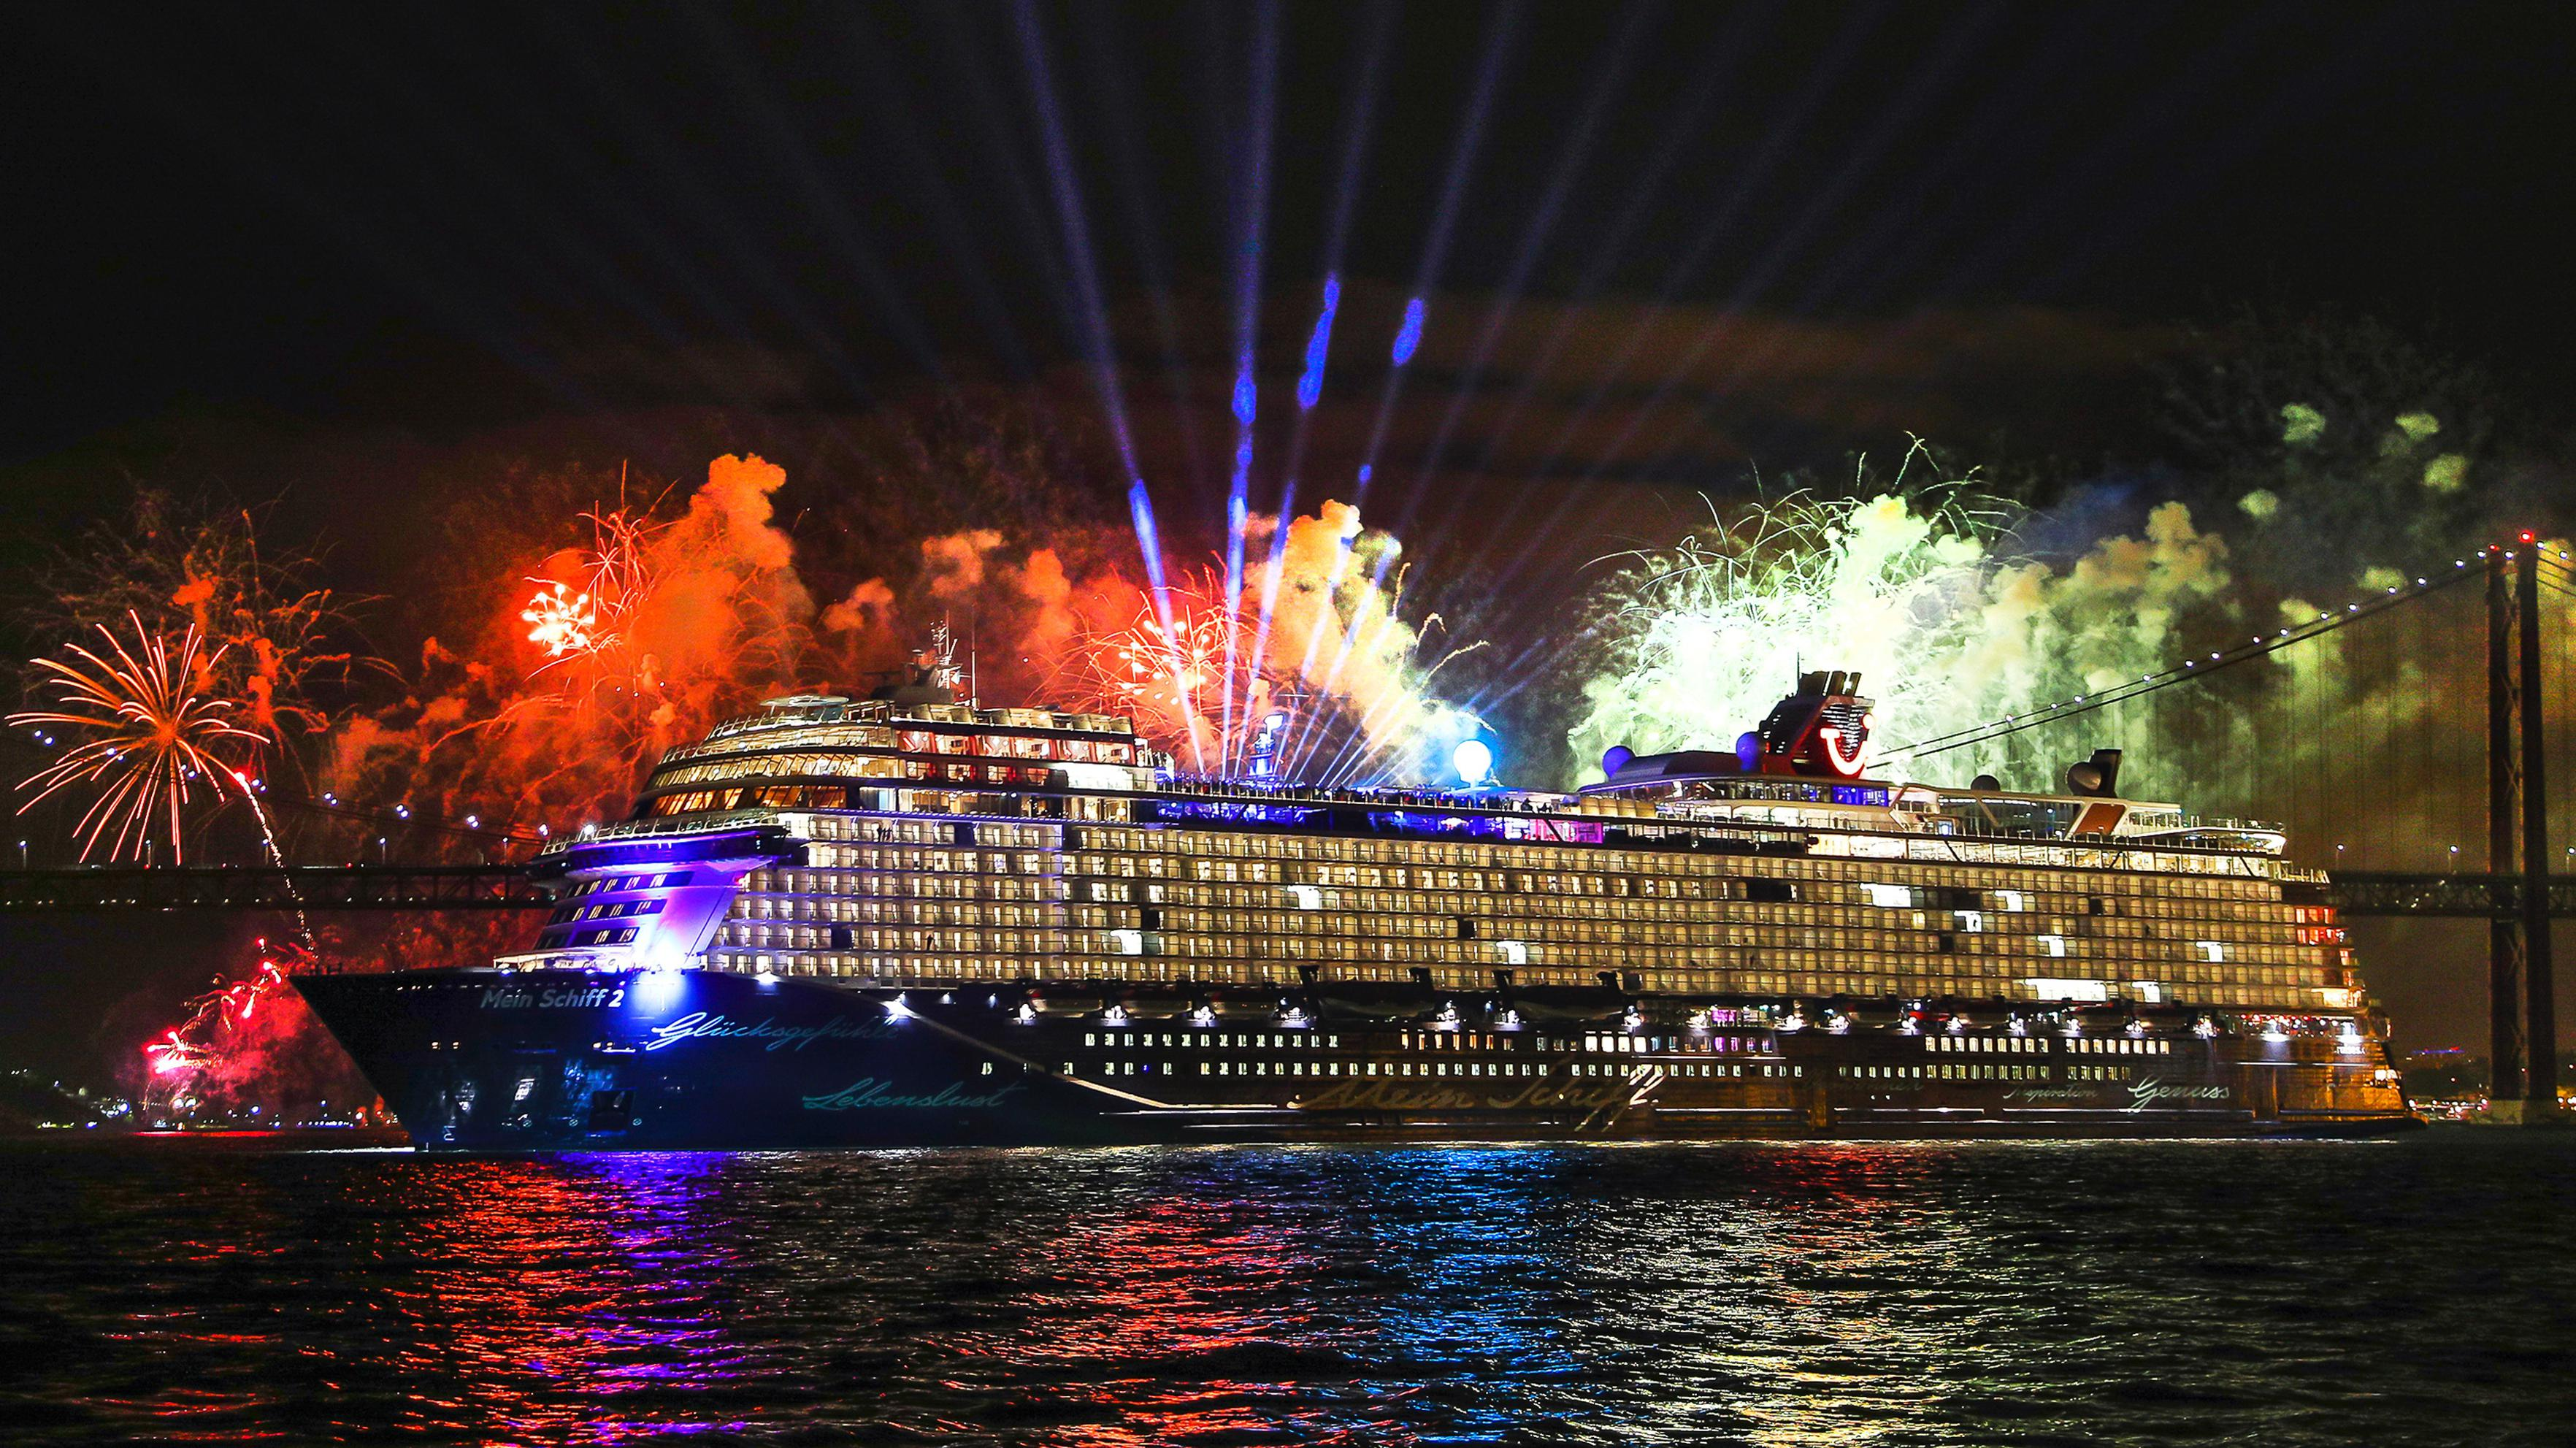 A spectacular christening for TUI Cruises' new Mein Schiff 2 which goes into service this year